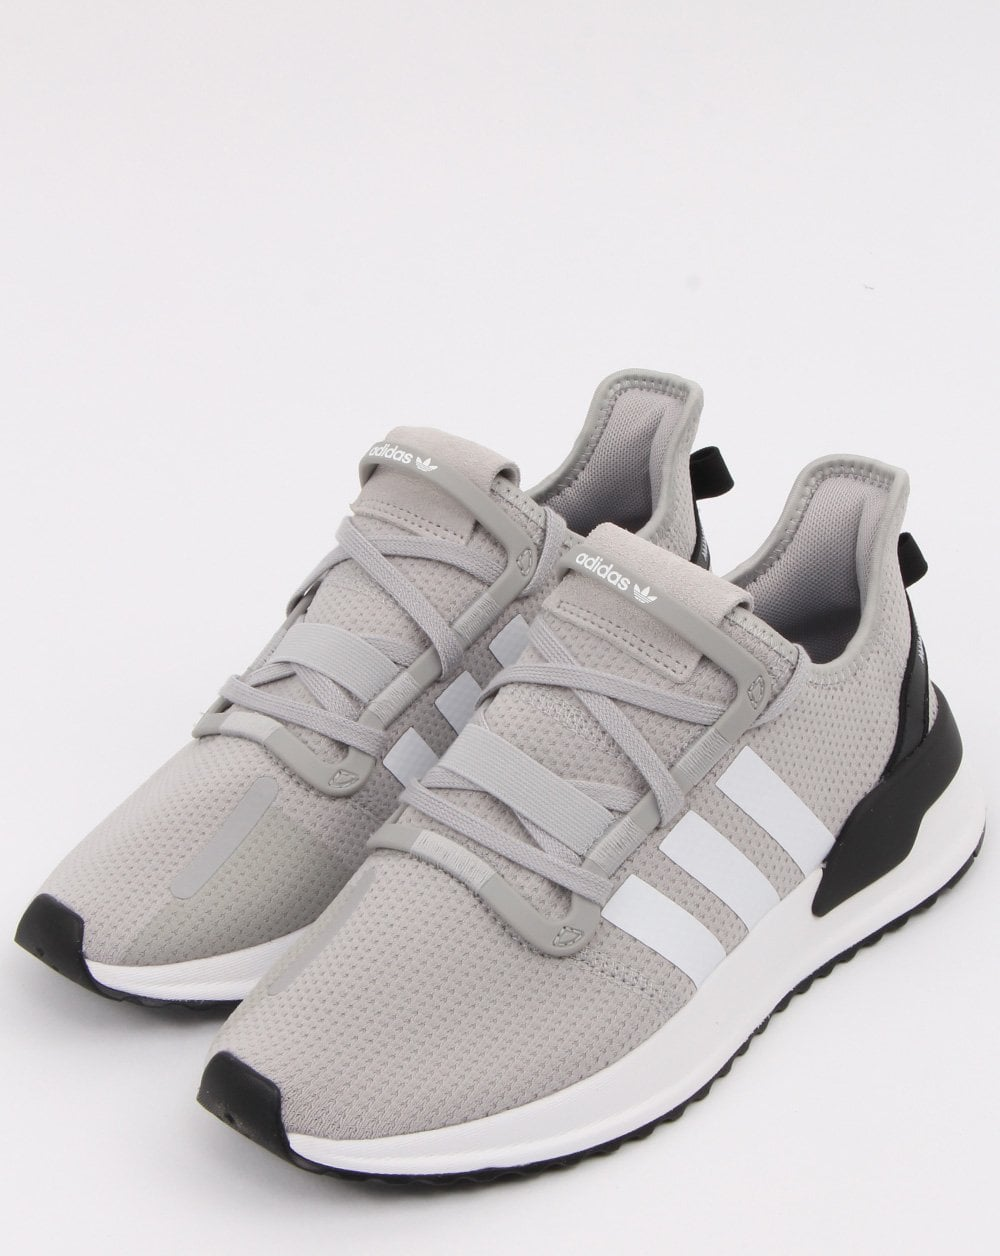 2aeba4932aa Adidas U path Run Trainers Grey White - Shop More Adidas Here at 80sCC